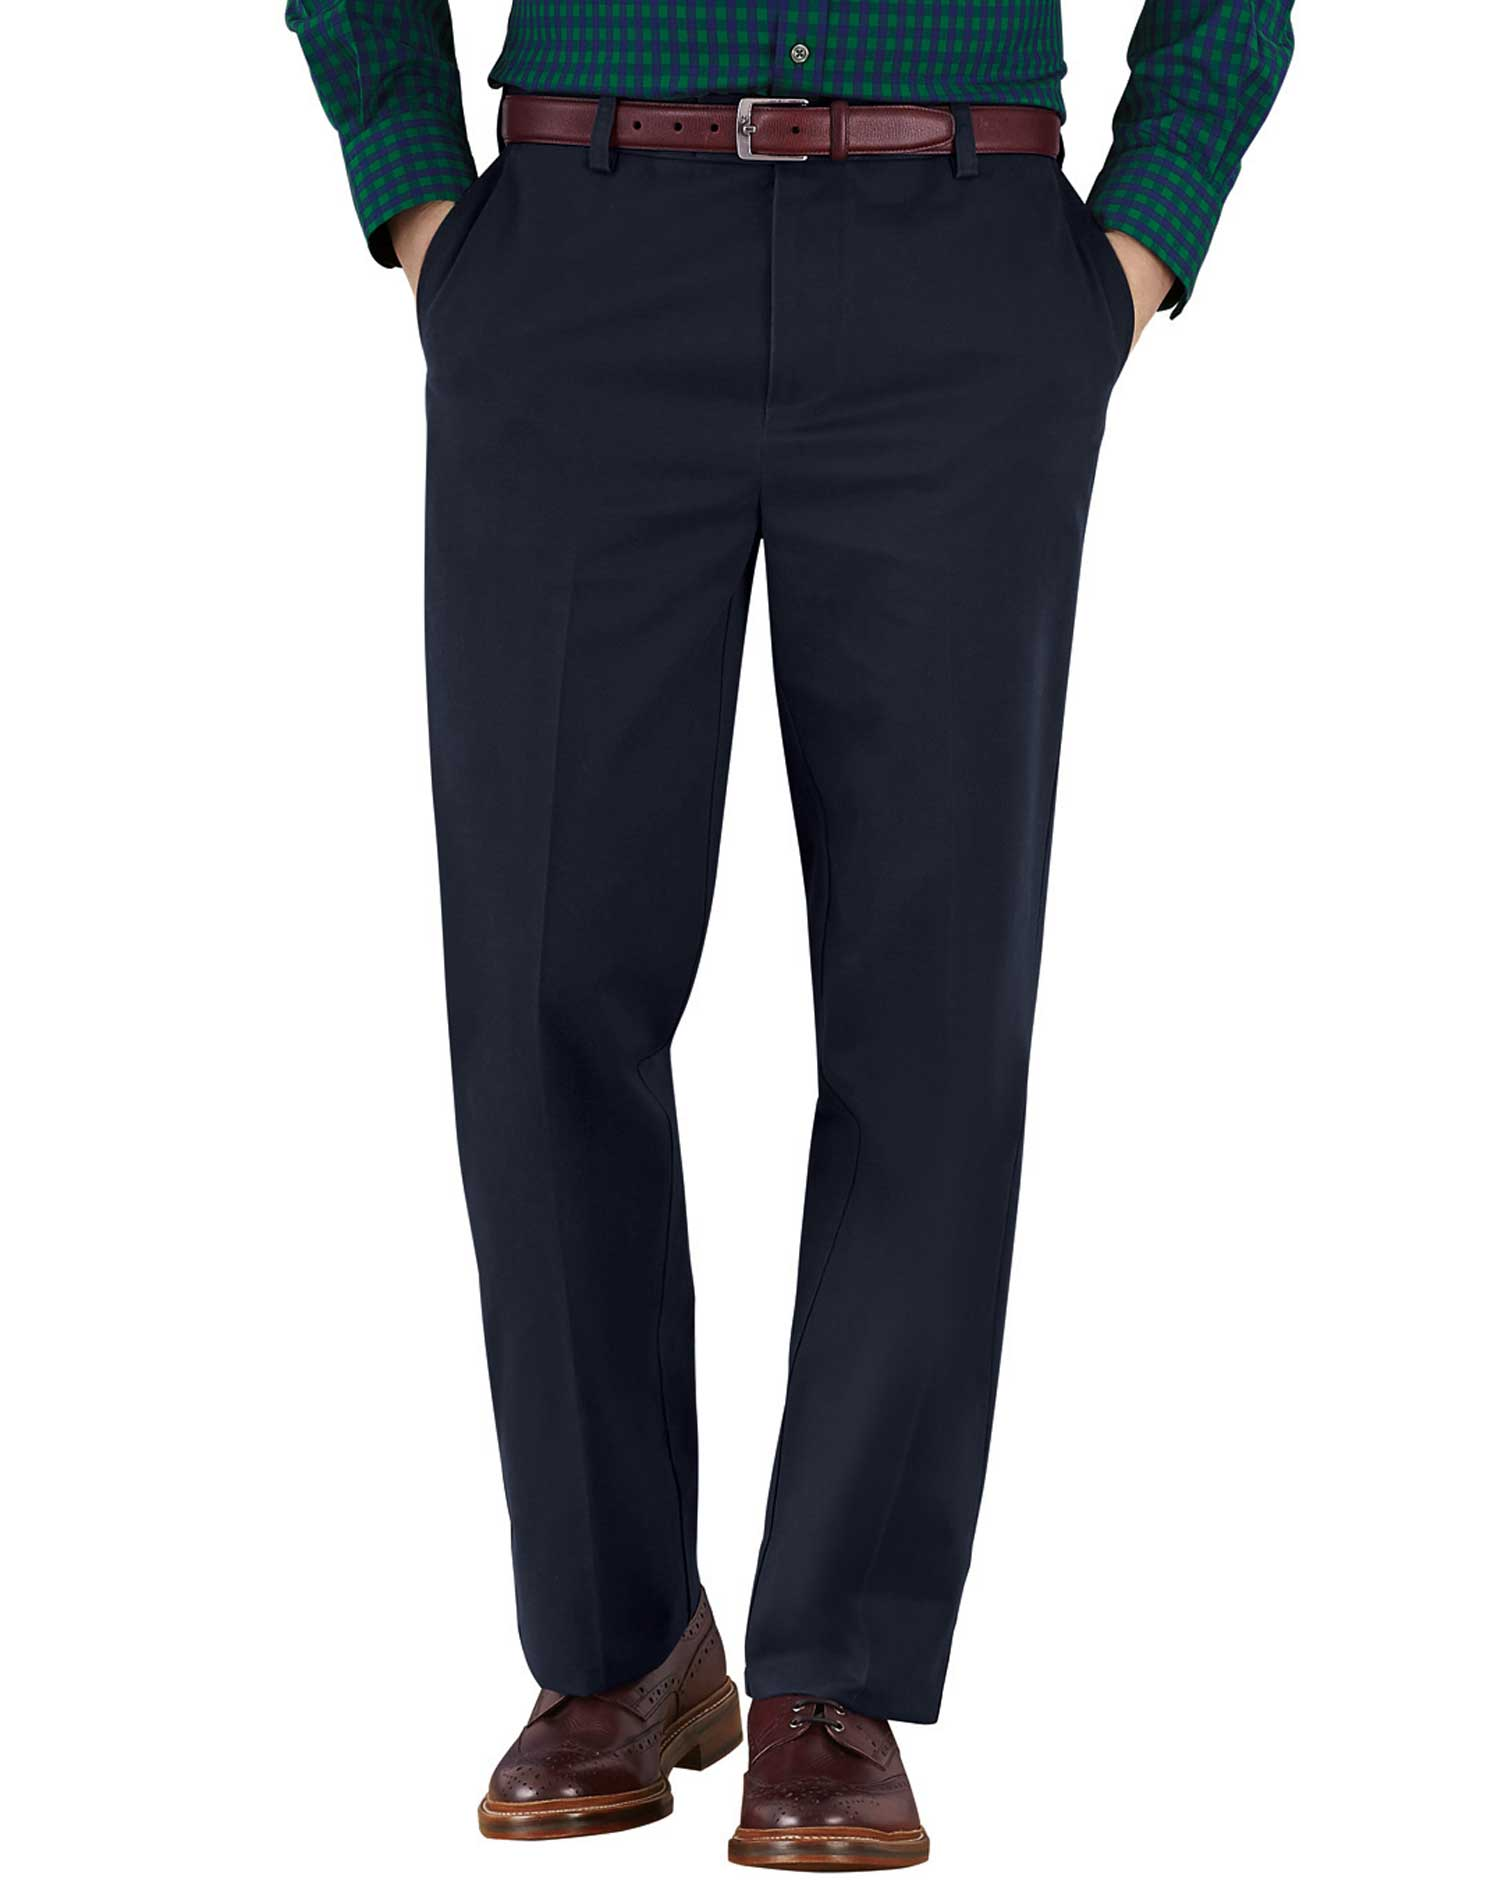 Navy Classic Fit Flat Front Non-Iron Cotton Chino Trousers Size W32 L32 by Charles Tyrwhitt